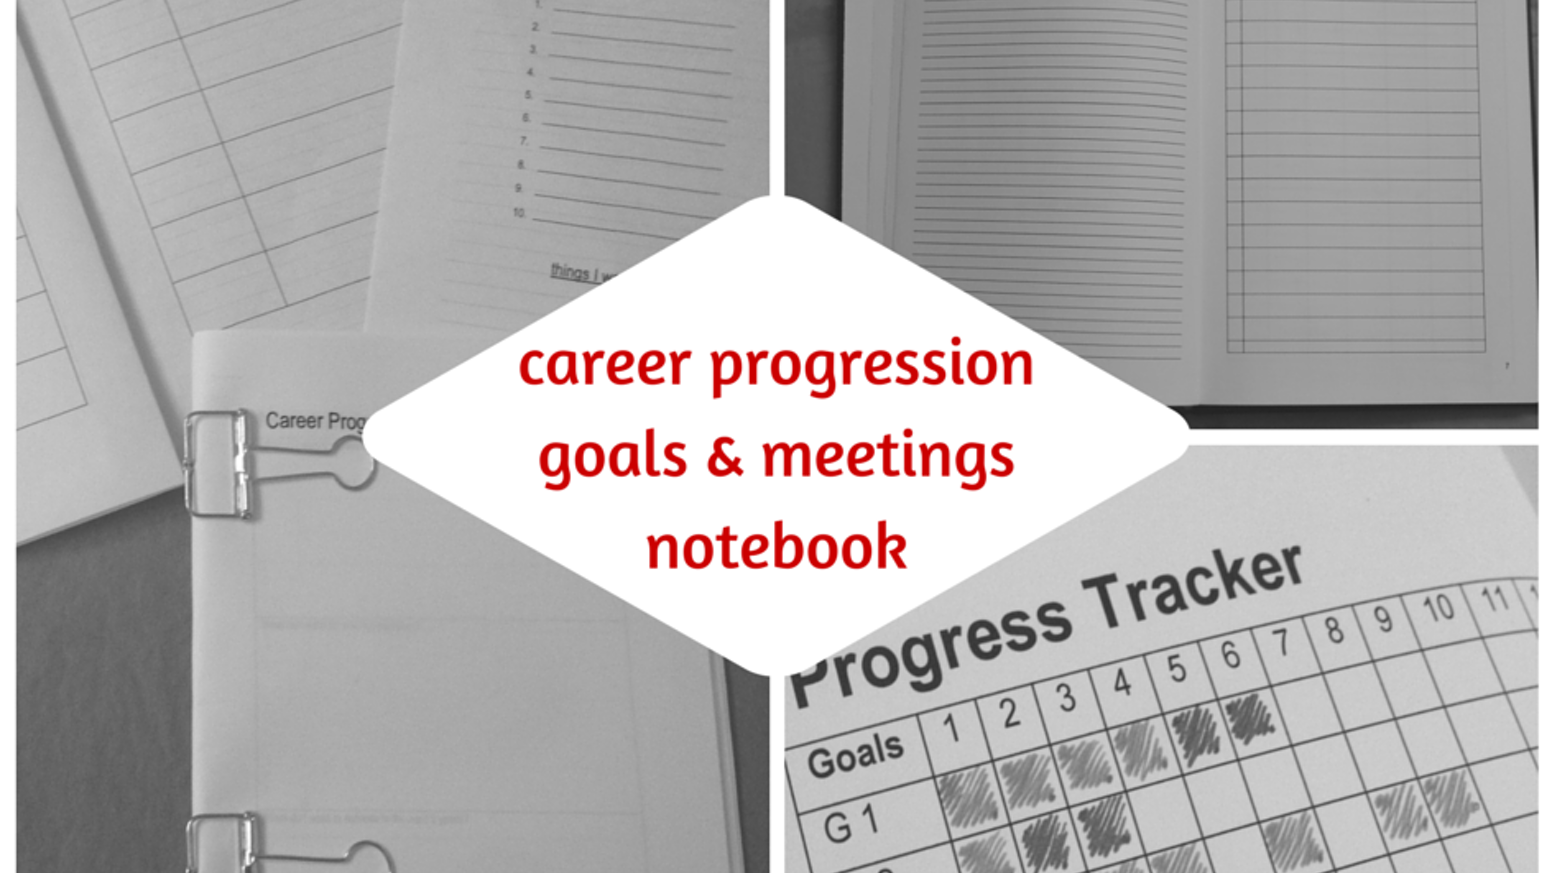 Career Progression Goals & Meetings Notebook by Printed Portal